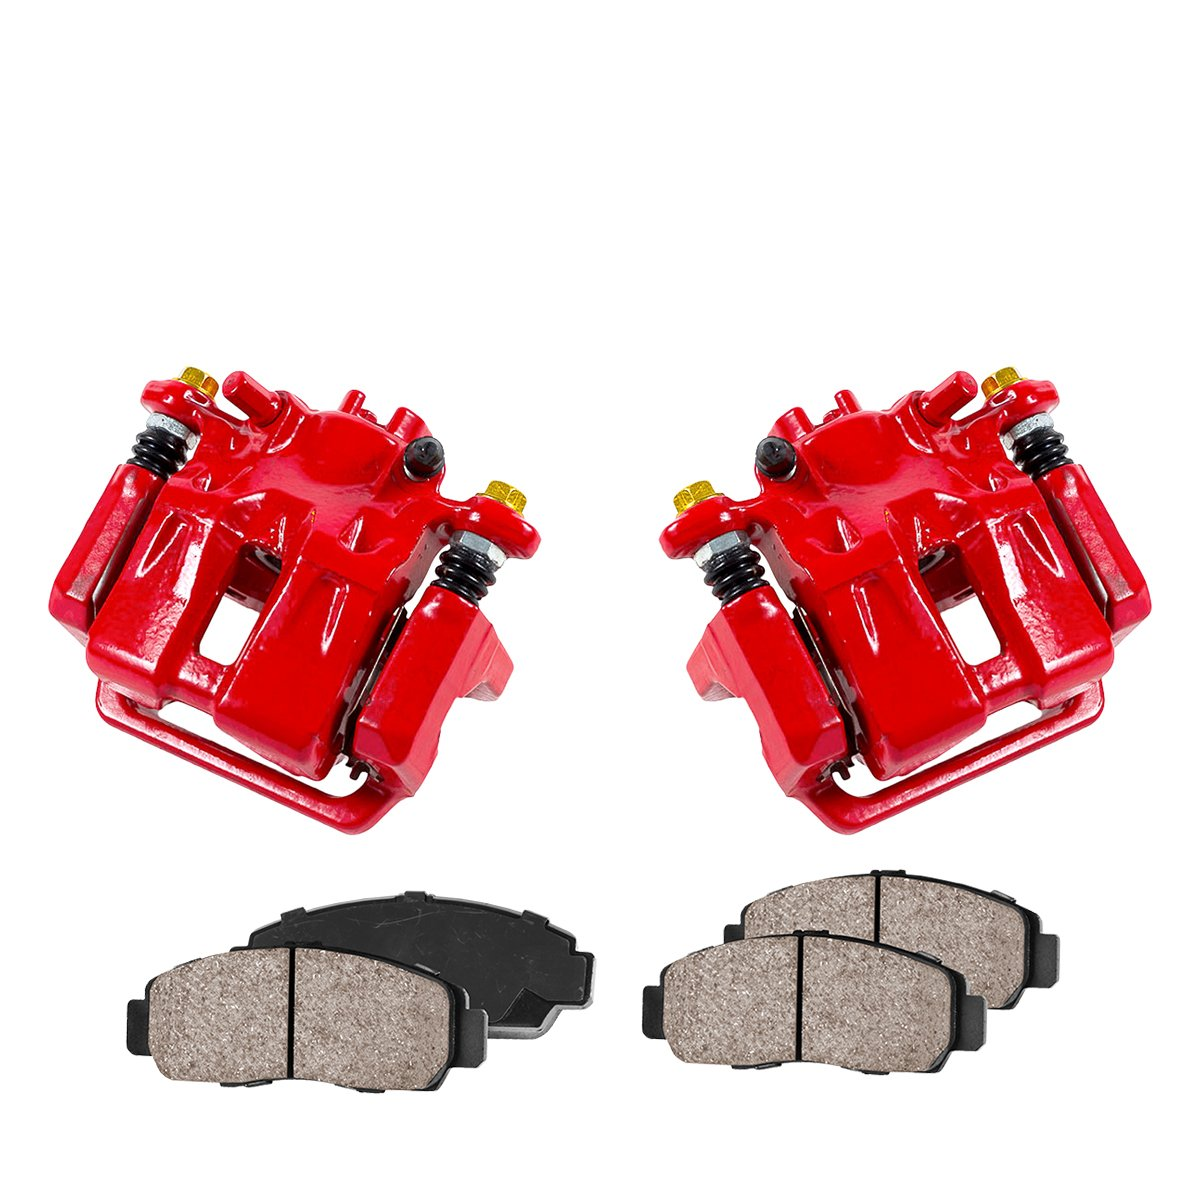 REAR Performance Red Powder Coated Calipers + 4 Quiet Low Dust Ceramic Brake Pads CCK02430 2